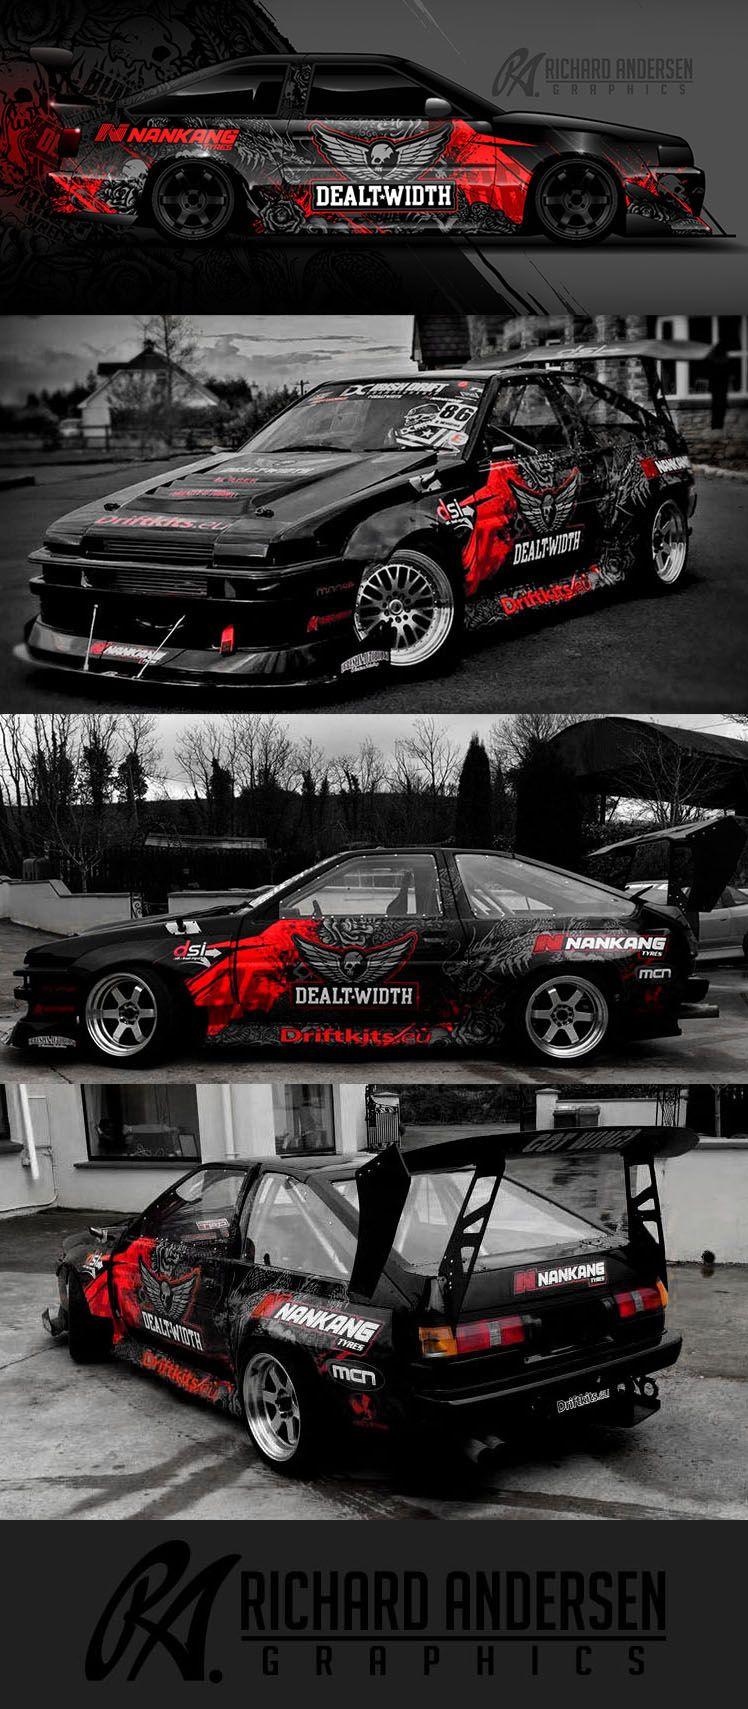 Richard Andersen Wrap Design Street And Track CarsRides - Racing car decals designpng race car wraps pinterest cars